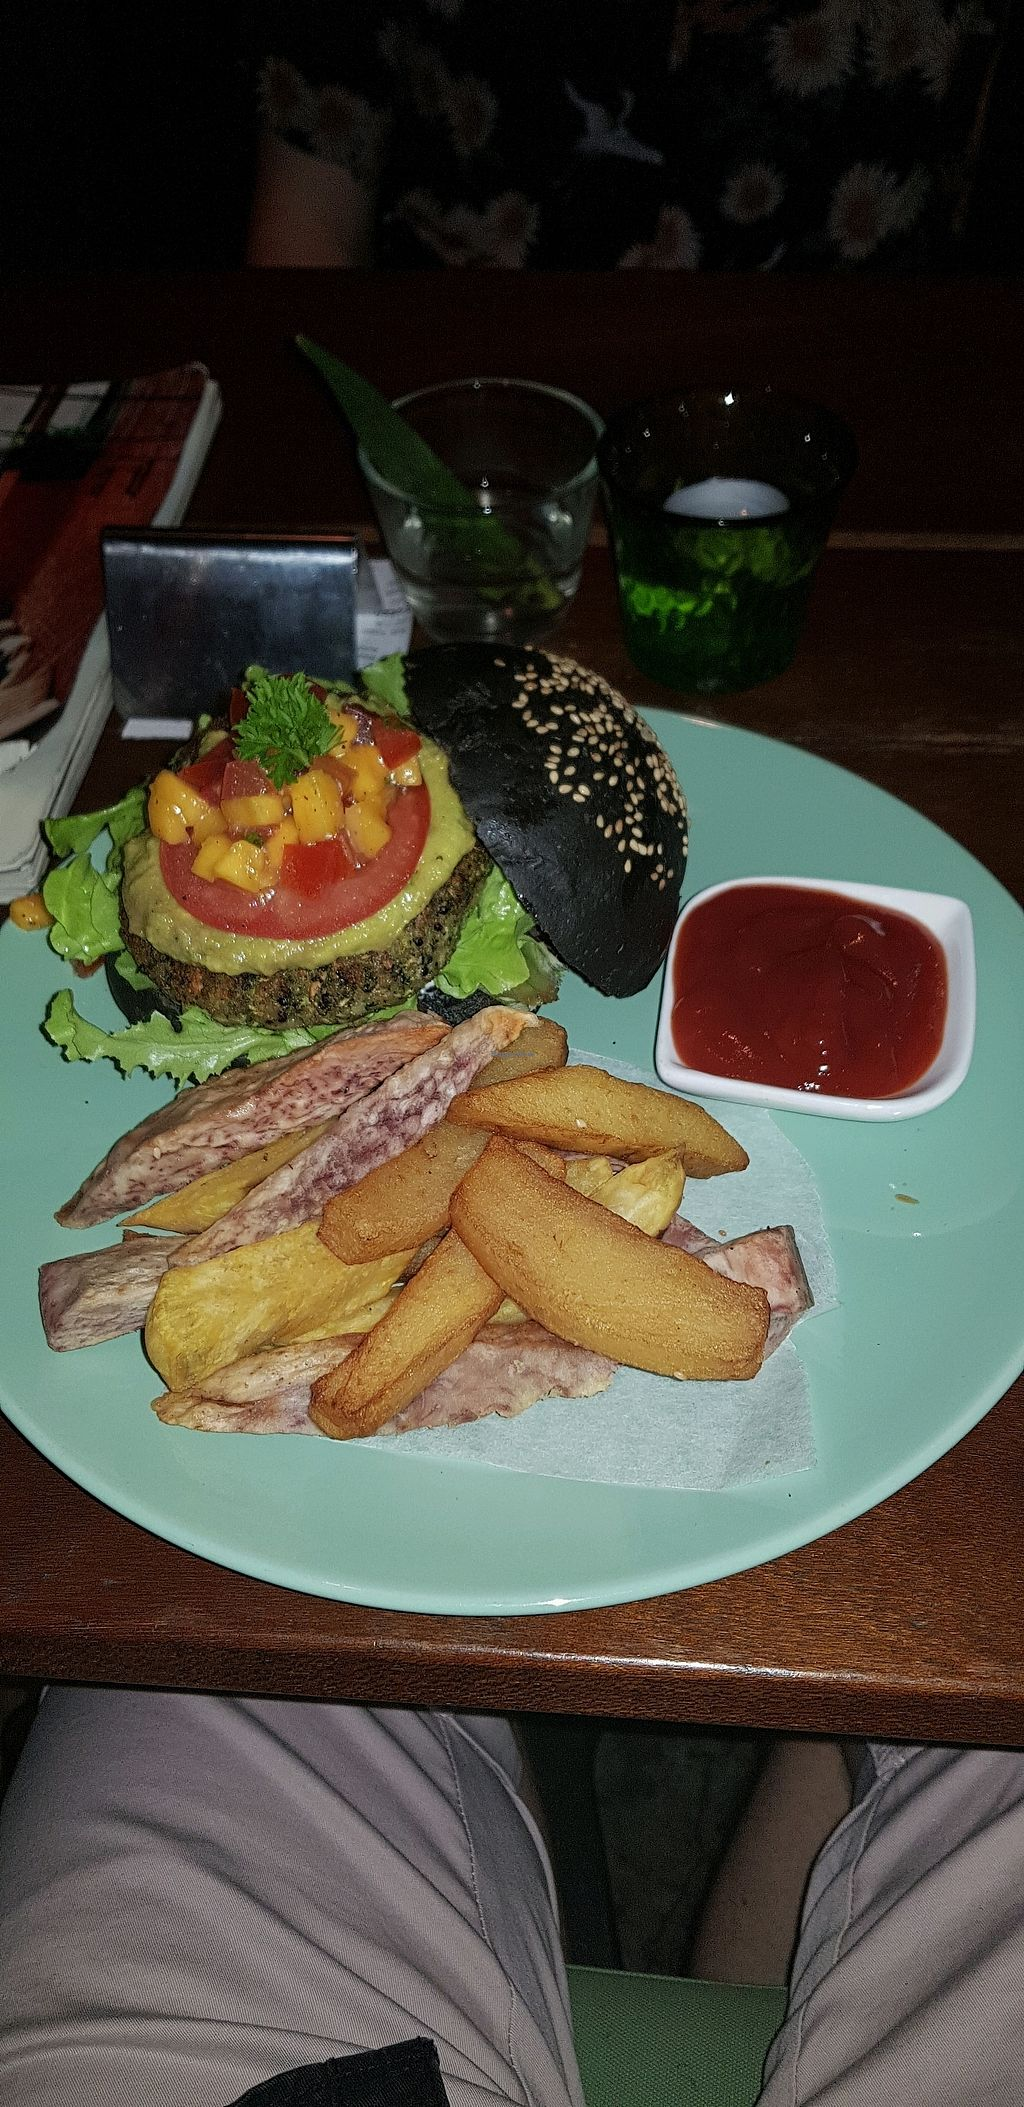 """Photo of Broccoli Revolution - Sukhumvit Rd  by <a href=""""/members/profile/AliMac84"""">AliMac84</a> <br/>charcoal burger  <br/> March 21, 2018  - <a href='/contact/abuse/image/64334/373860'>Report</a>"""